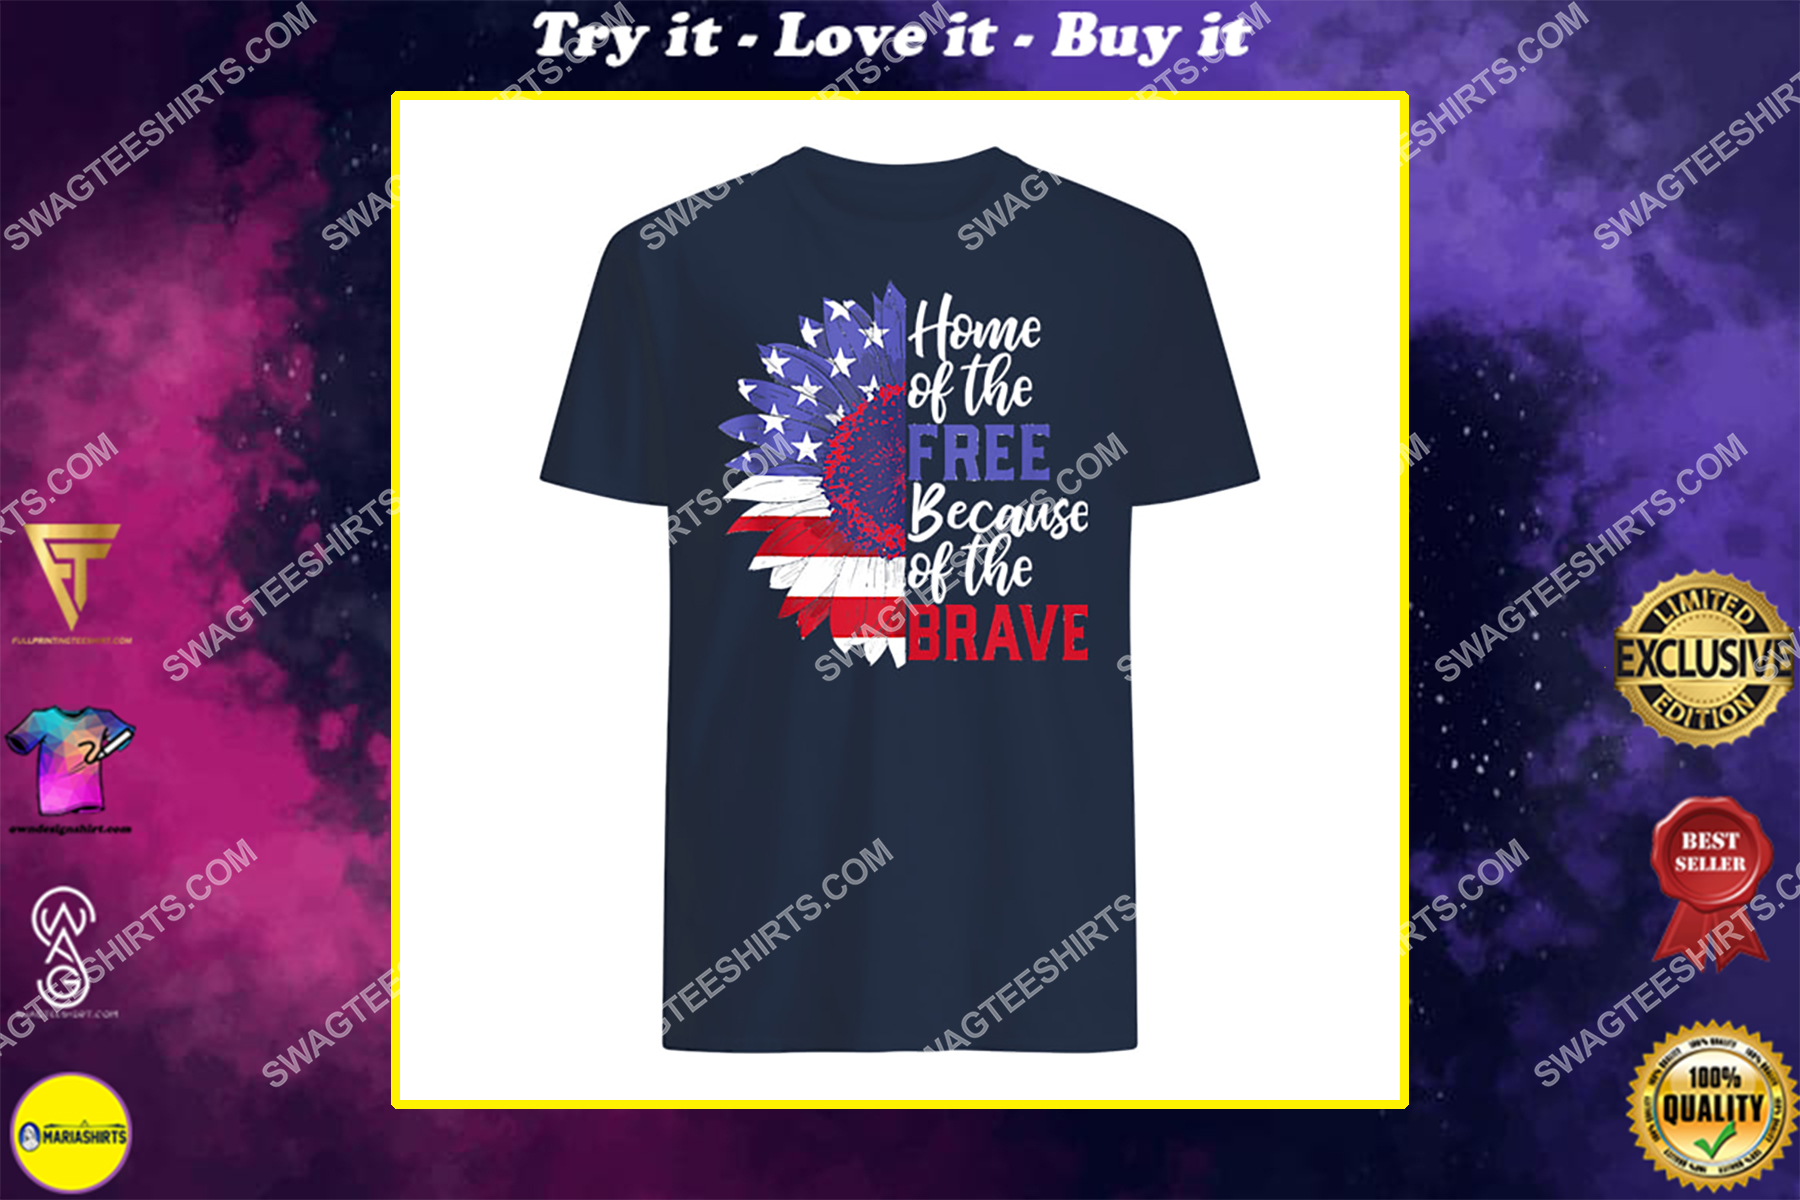 home of the free because of the brave sunflower 4th of july shirt